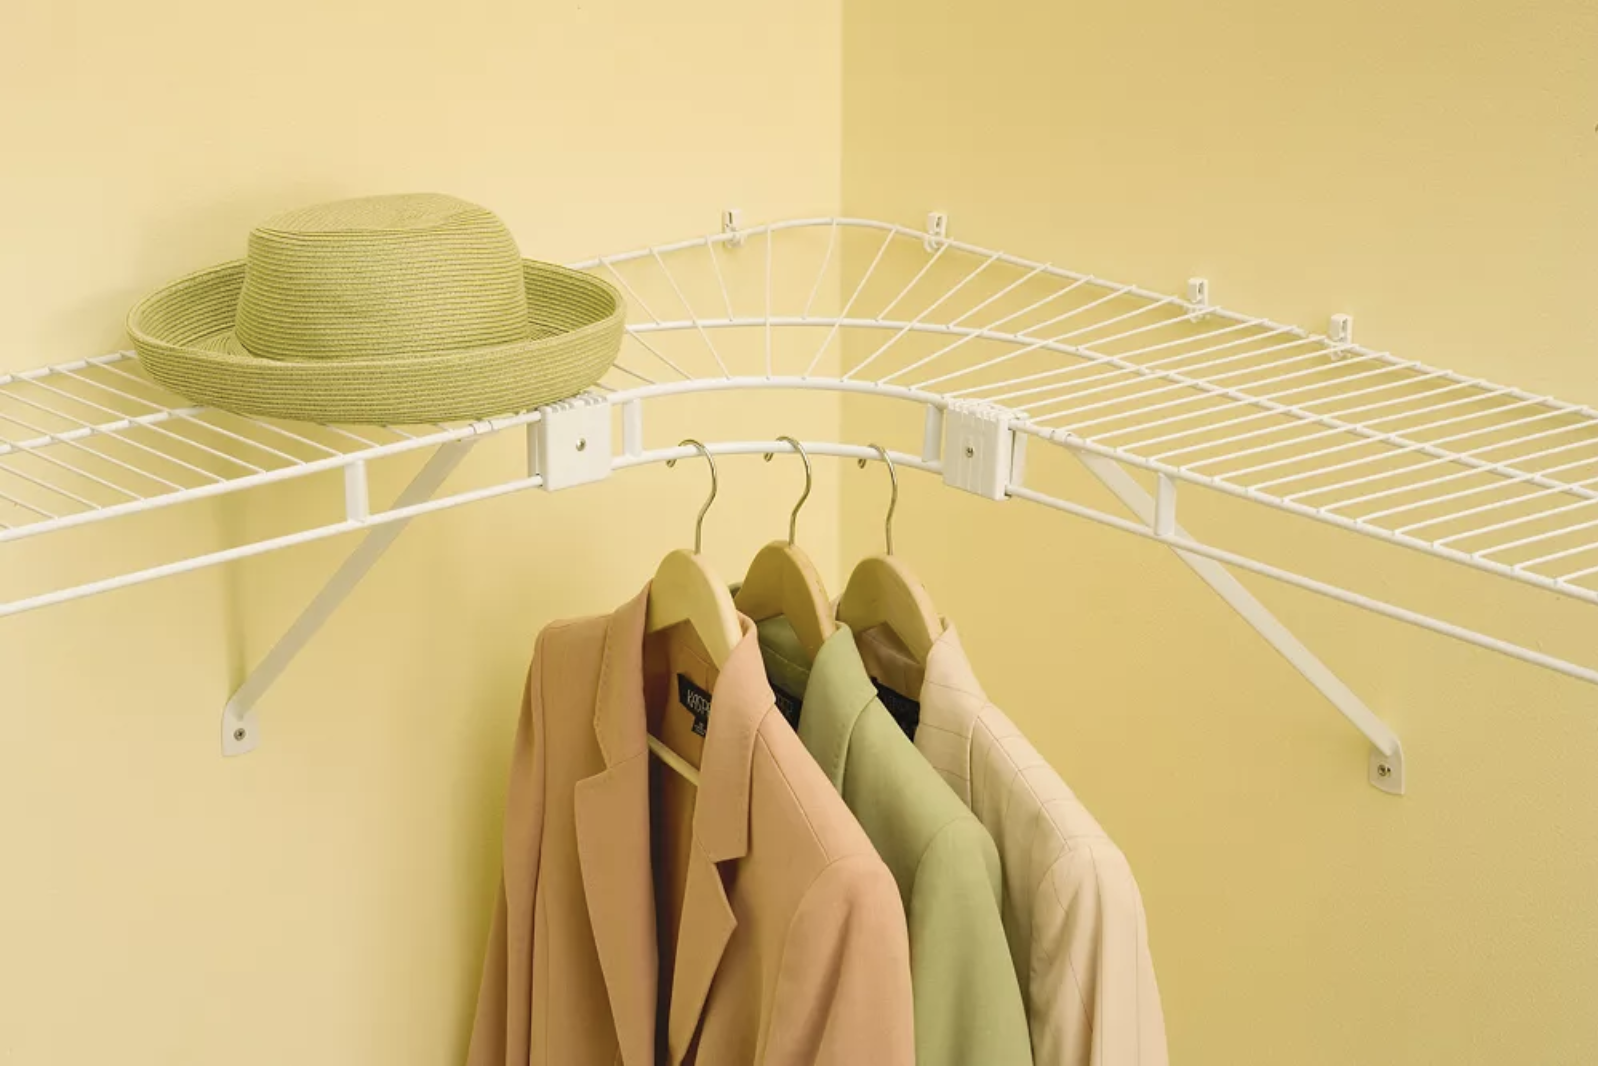 three coats hanging from the corner unit with one hat on the shelf